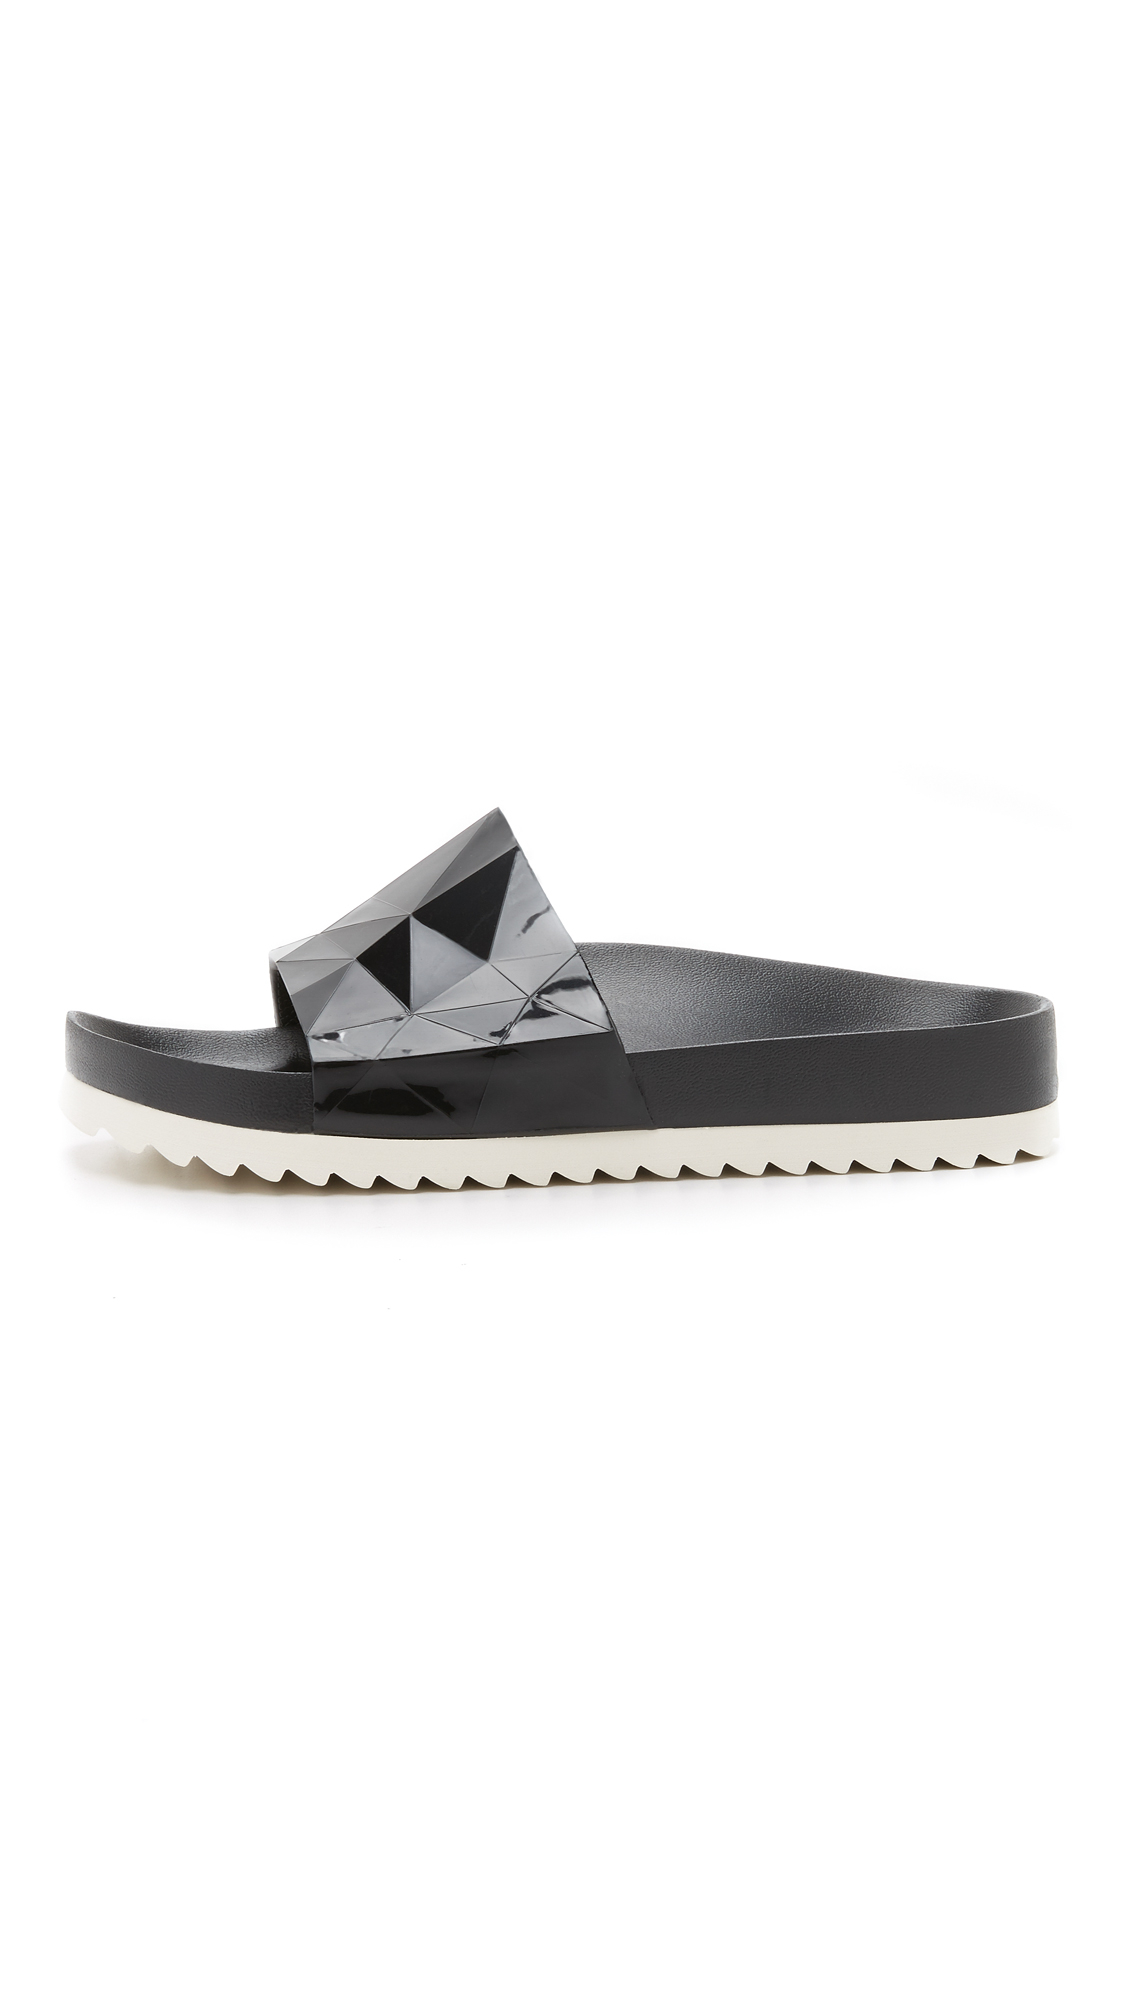 Black earth sandals - Gallery